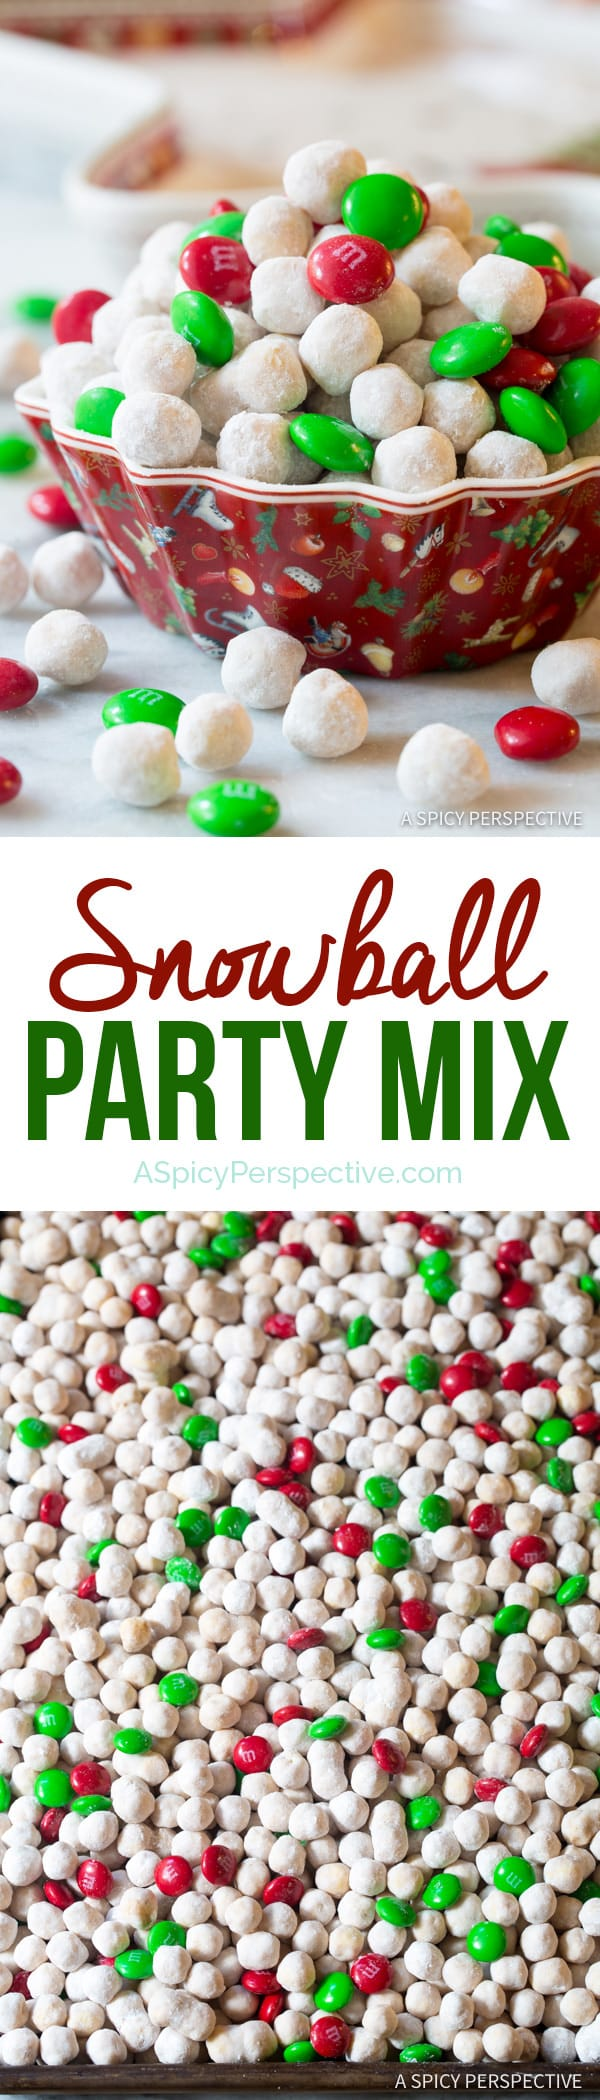 Festive Snowball Party Mix | ASpicyPerspective.com #christmas #ediblegifts